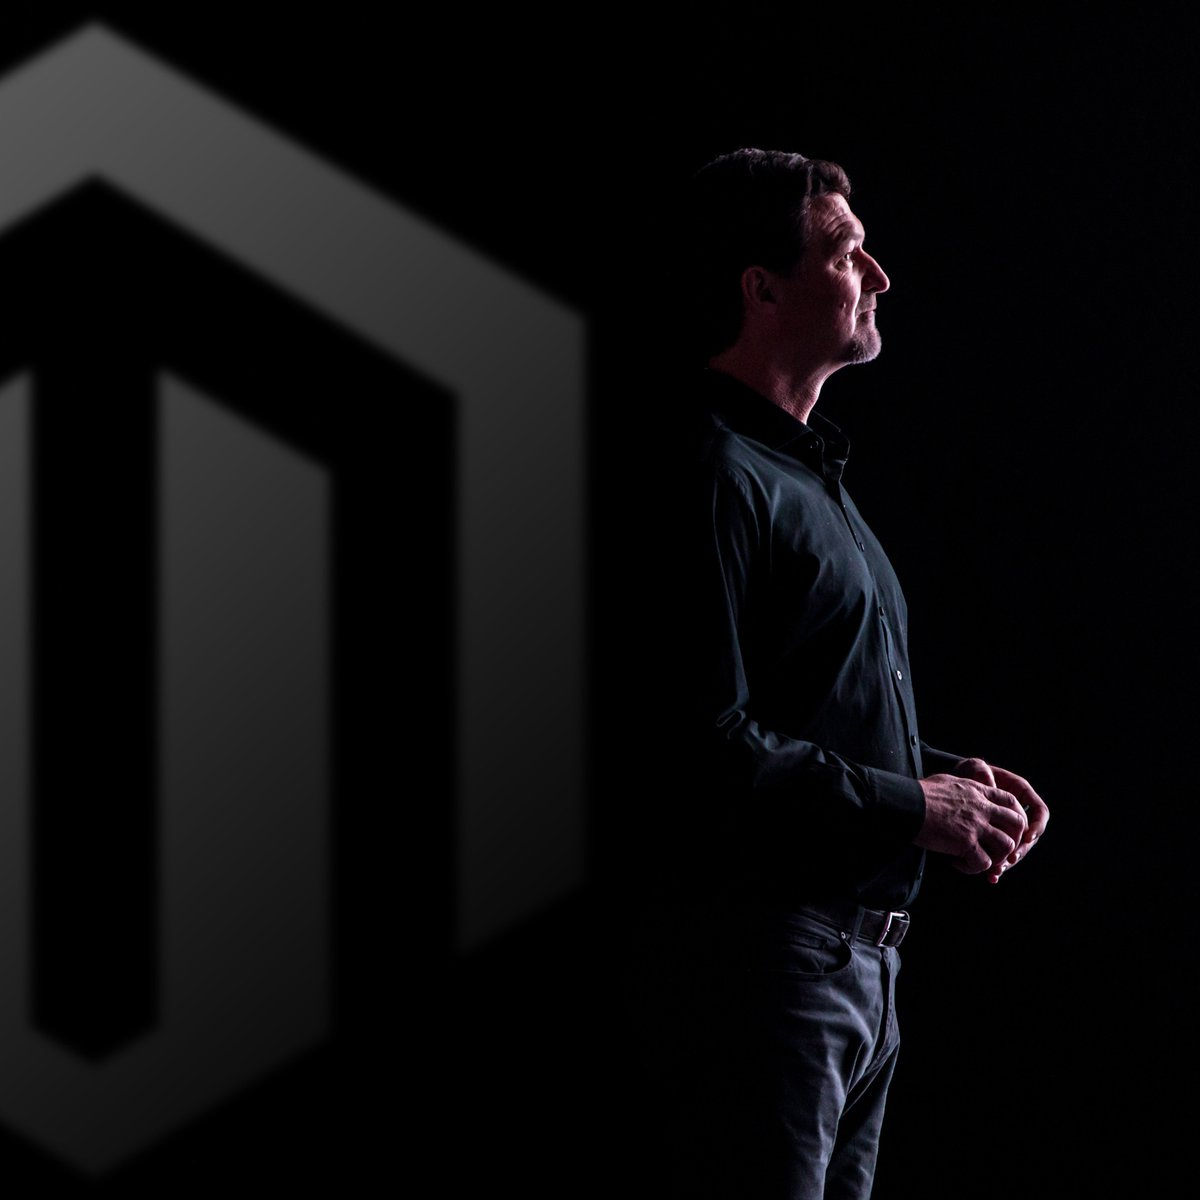 EbsworthPhoto: The CEO of @magento Mark Lavelle @mklave1 during one of his Keynotes this week at #magentoimagine https://t.co/cu6yFJMy6a